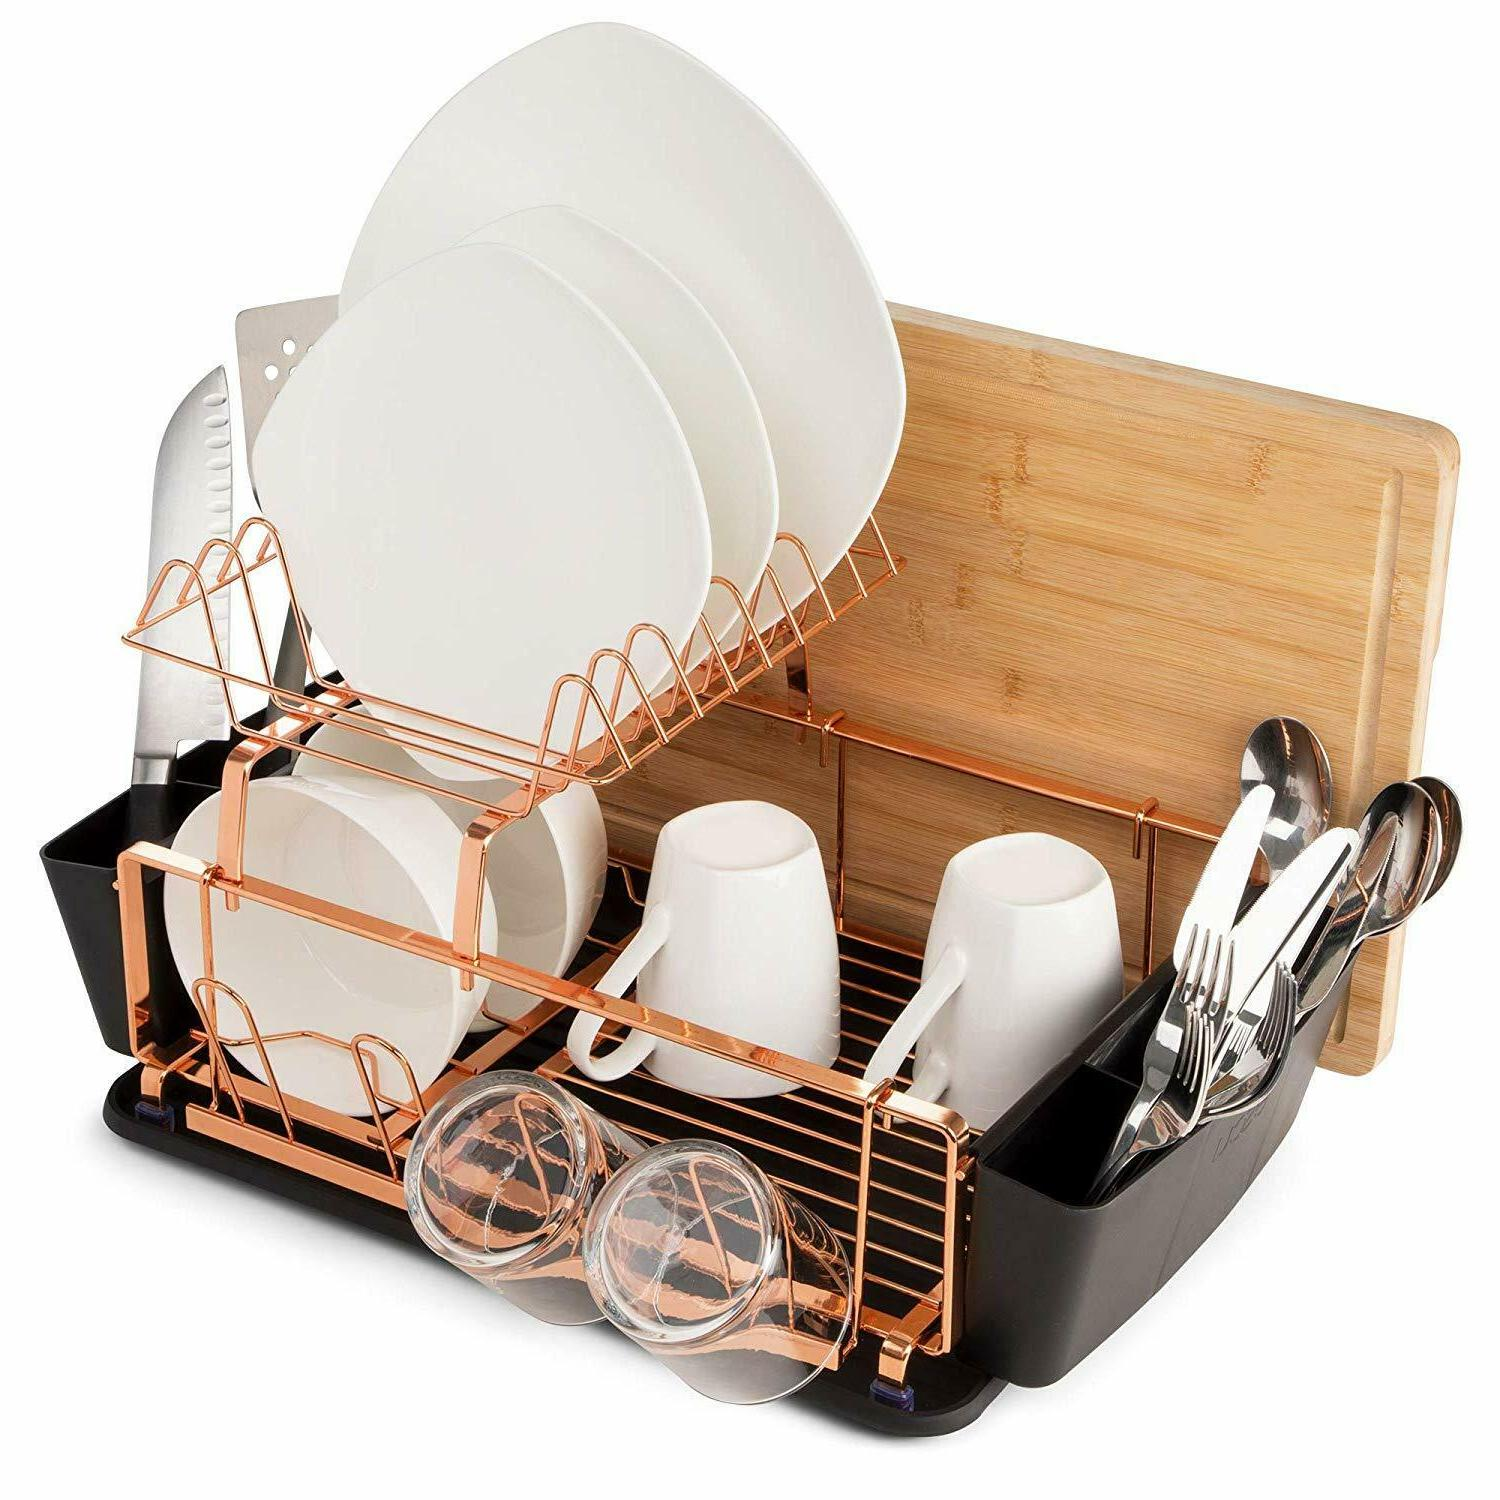 Copper Rack Dish Holder​ and Drainboard Set Adjustable w/Baskets